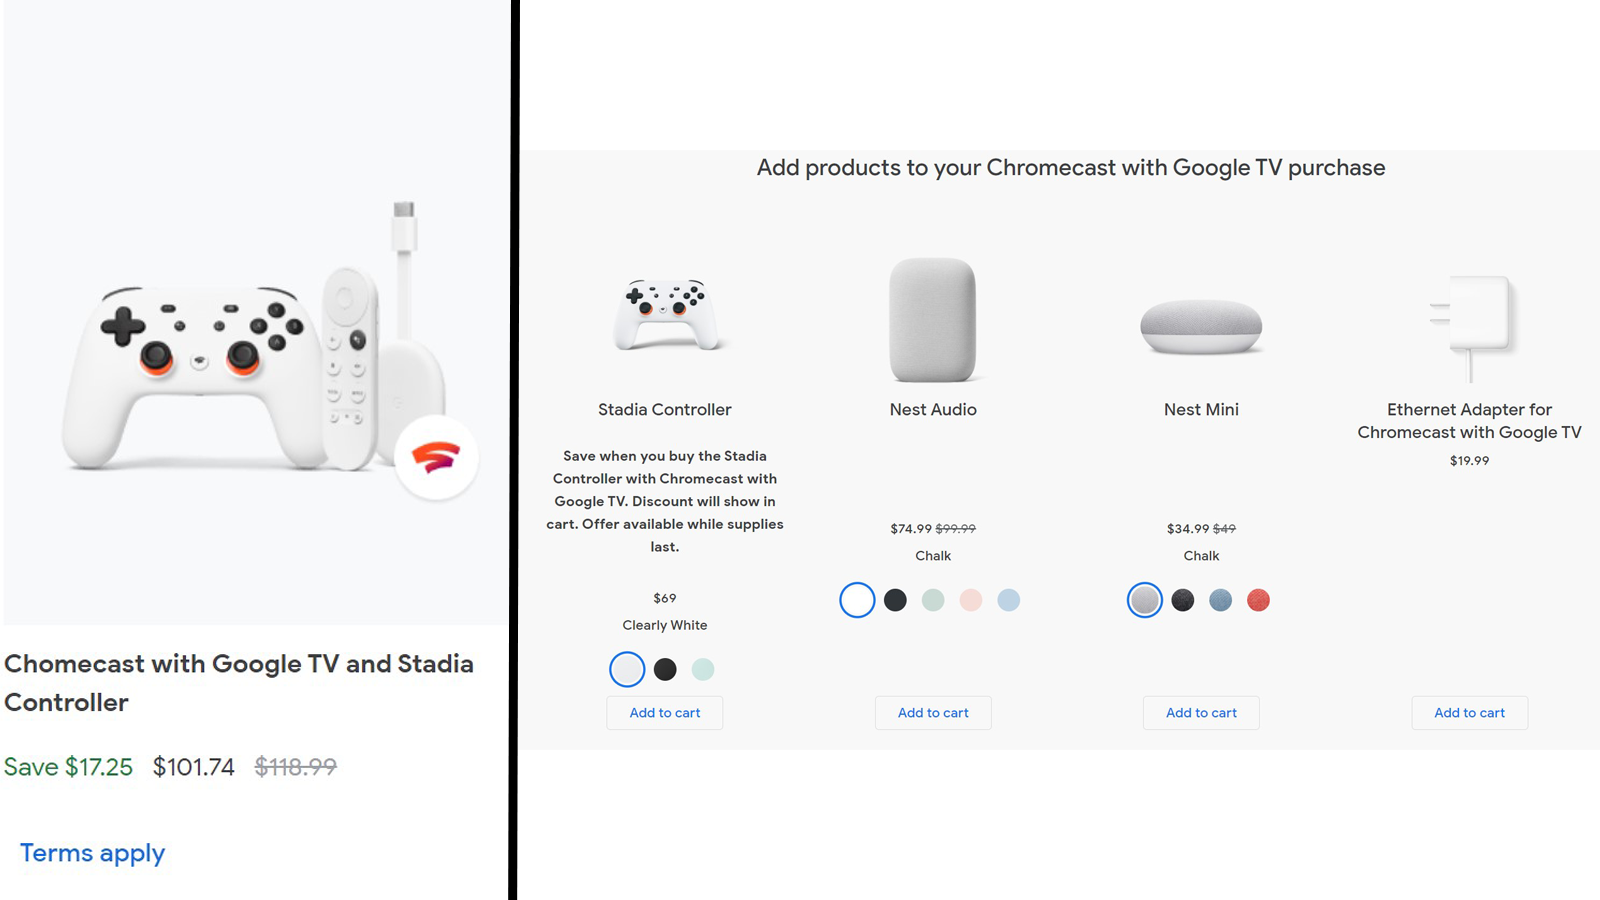 Chromecast with Google TV and Stadia controller shown with Nest Audio and Mini and an Ethernet Adaptor.